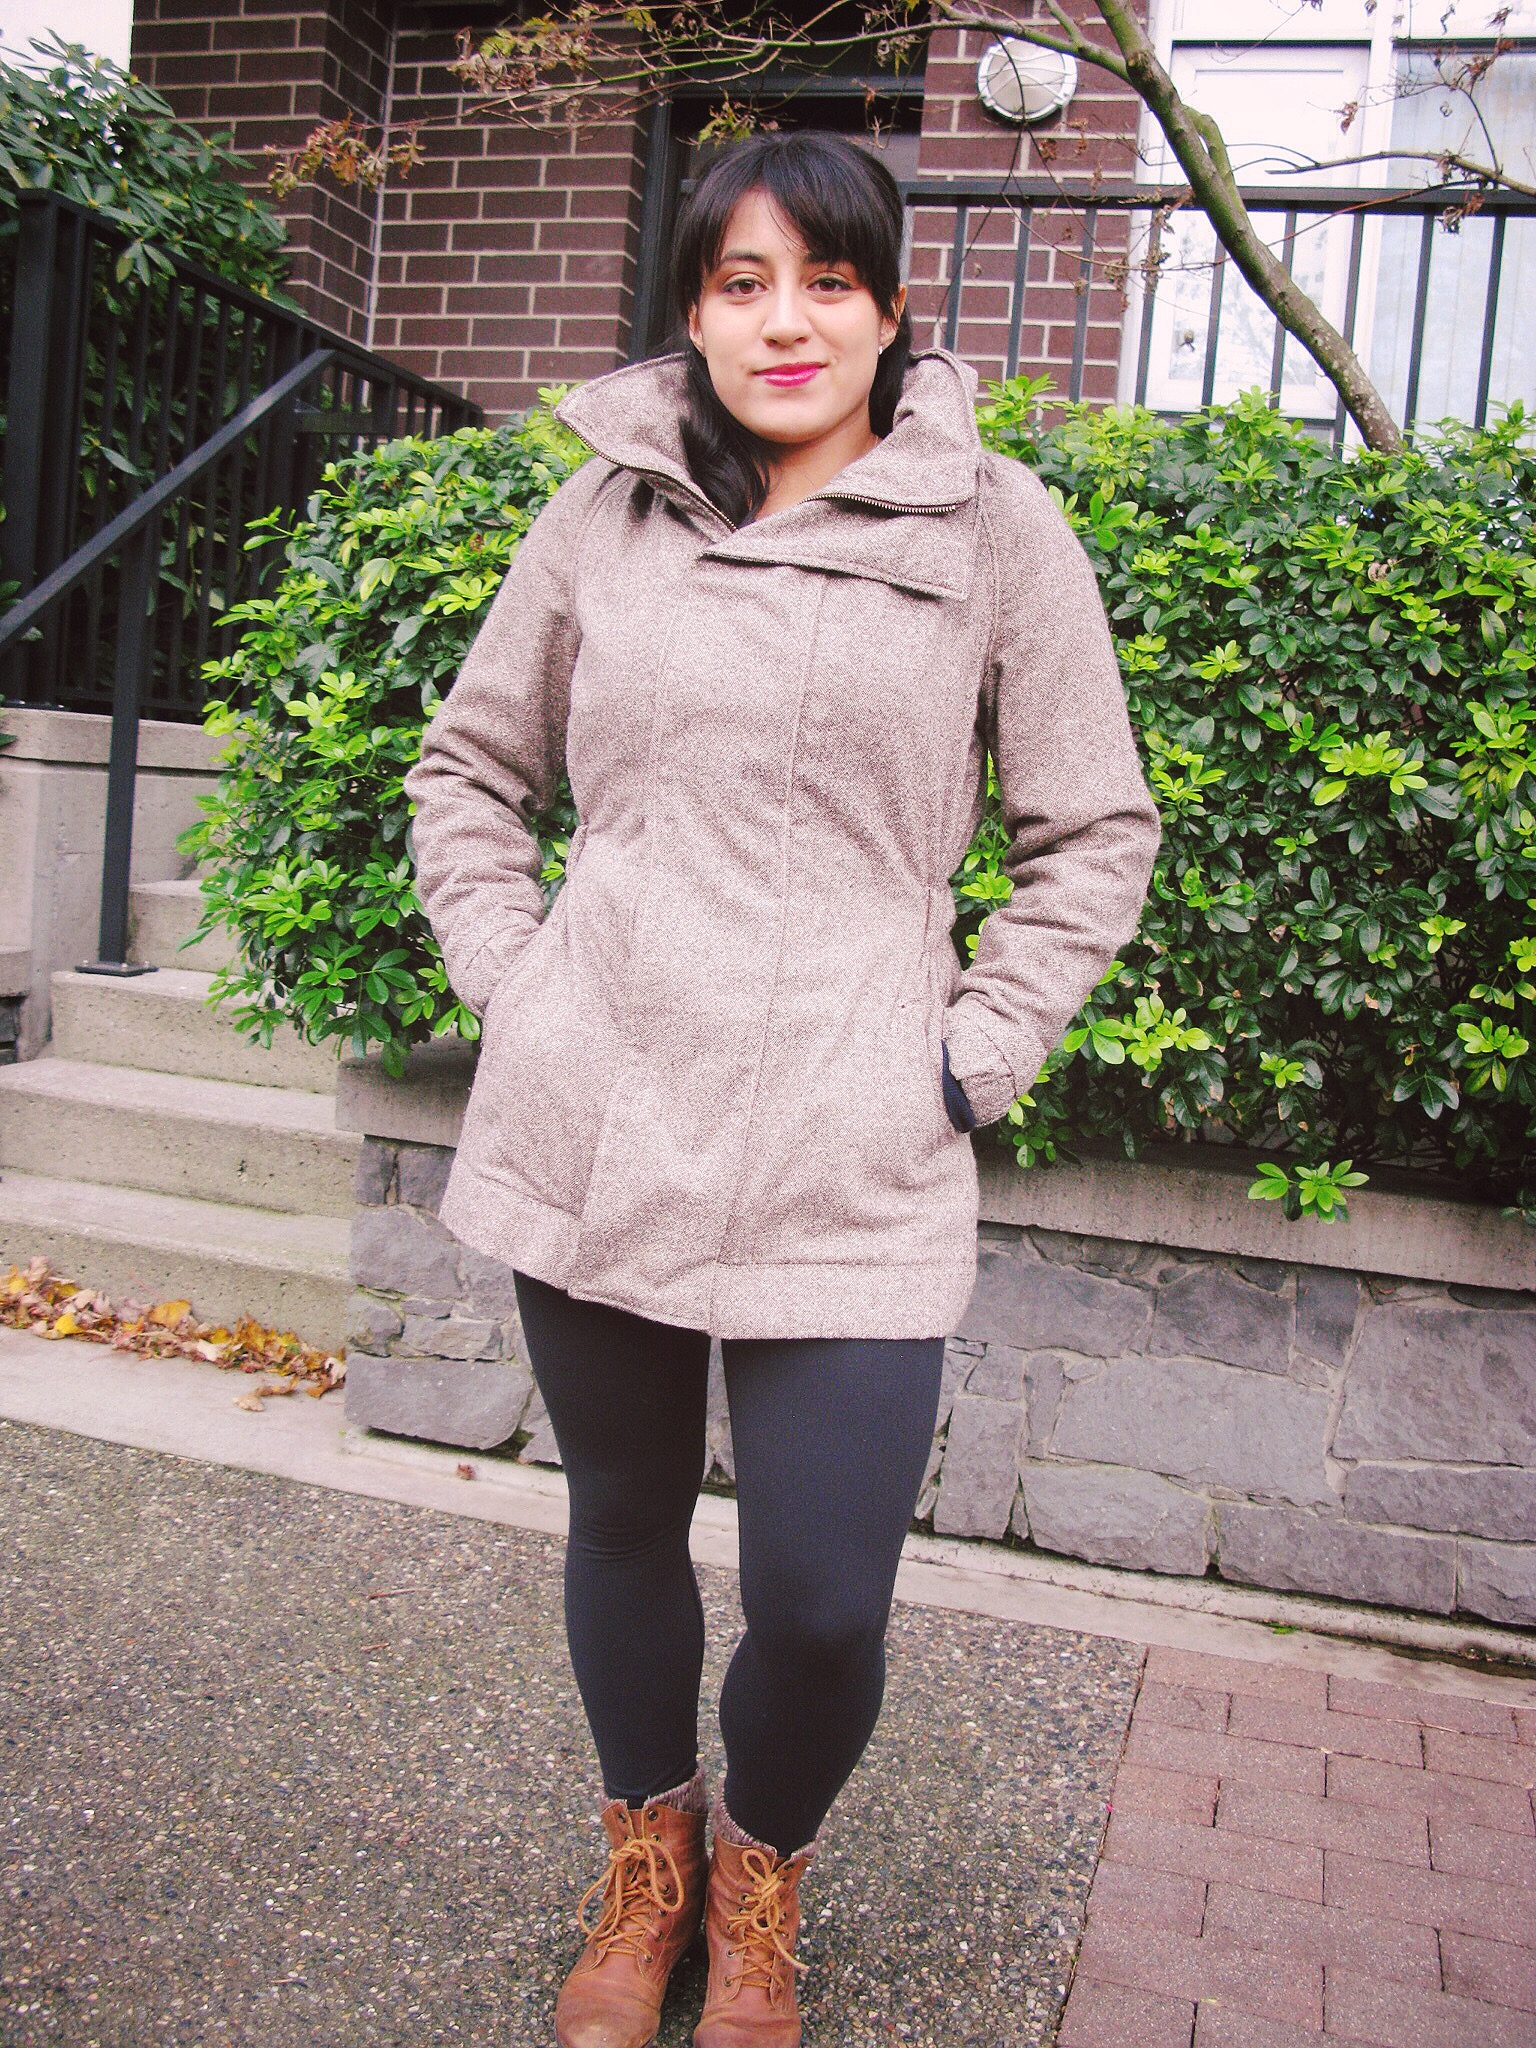 Who has an awesome, stylish, wool, snugly, warm jacket, with sleeves that are actually the correct length? This girl!